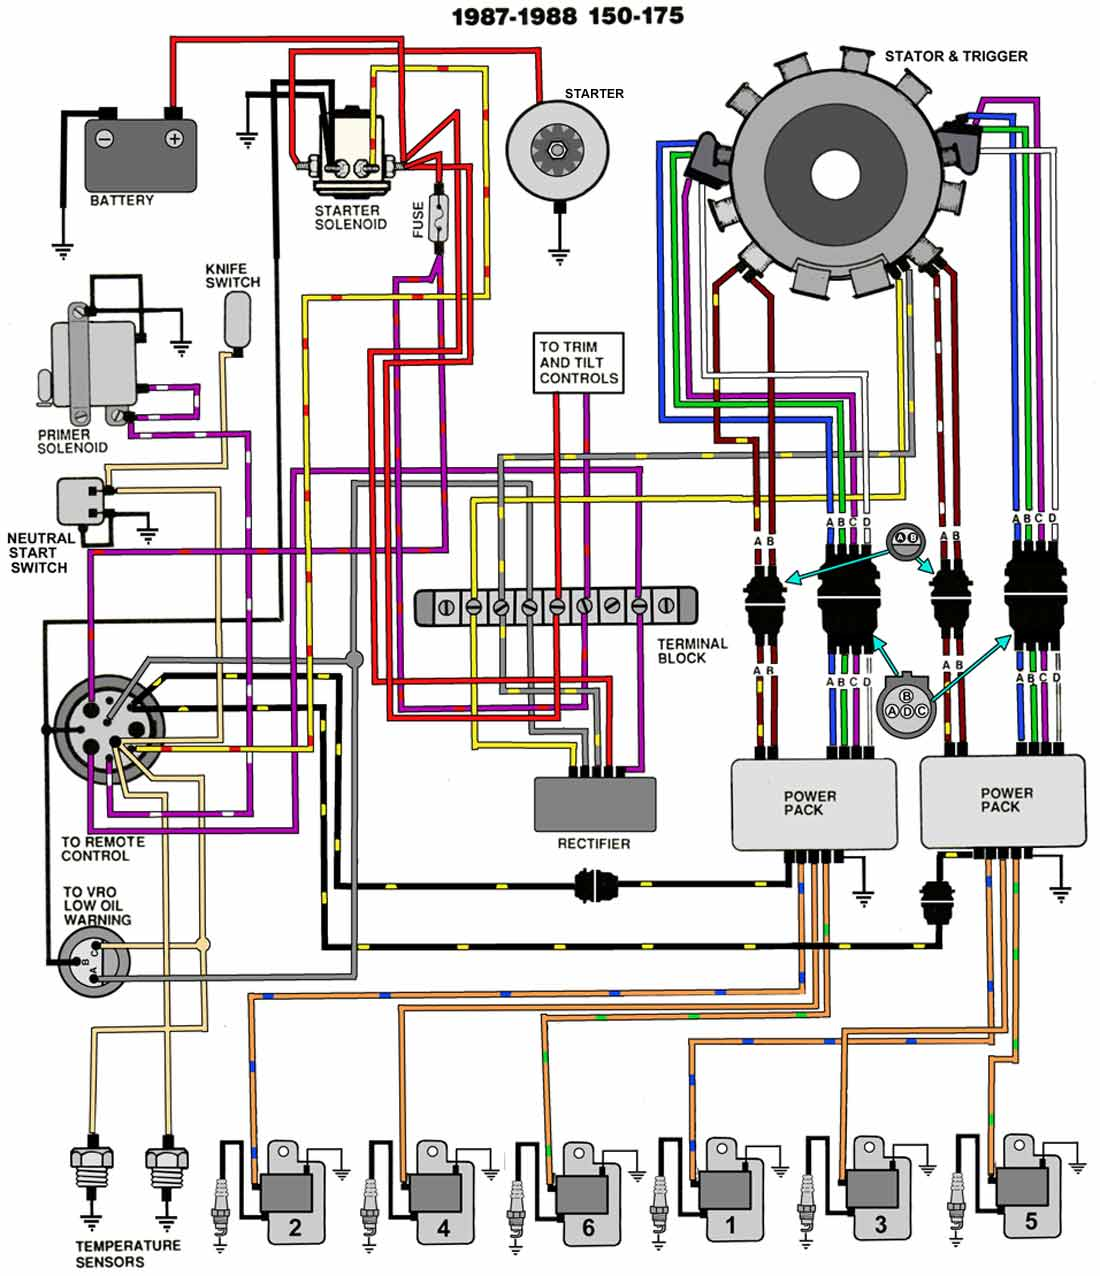 87_88_150_175  Hp Johnson Wiring Diagram on johnson evinrude ignition wiring diagrams, johnson outboard motor wiring diagram, johnson outboard tilt trim wiring diagram, evinrude 15 hp electric start wiring diagram, 70 hp evinrude outboard motor wiring diagram,